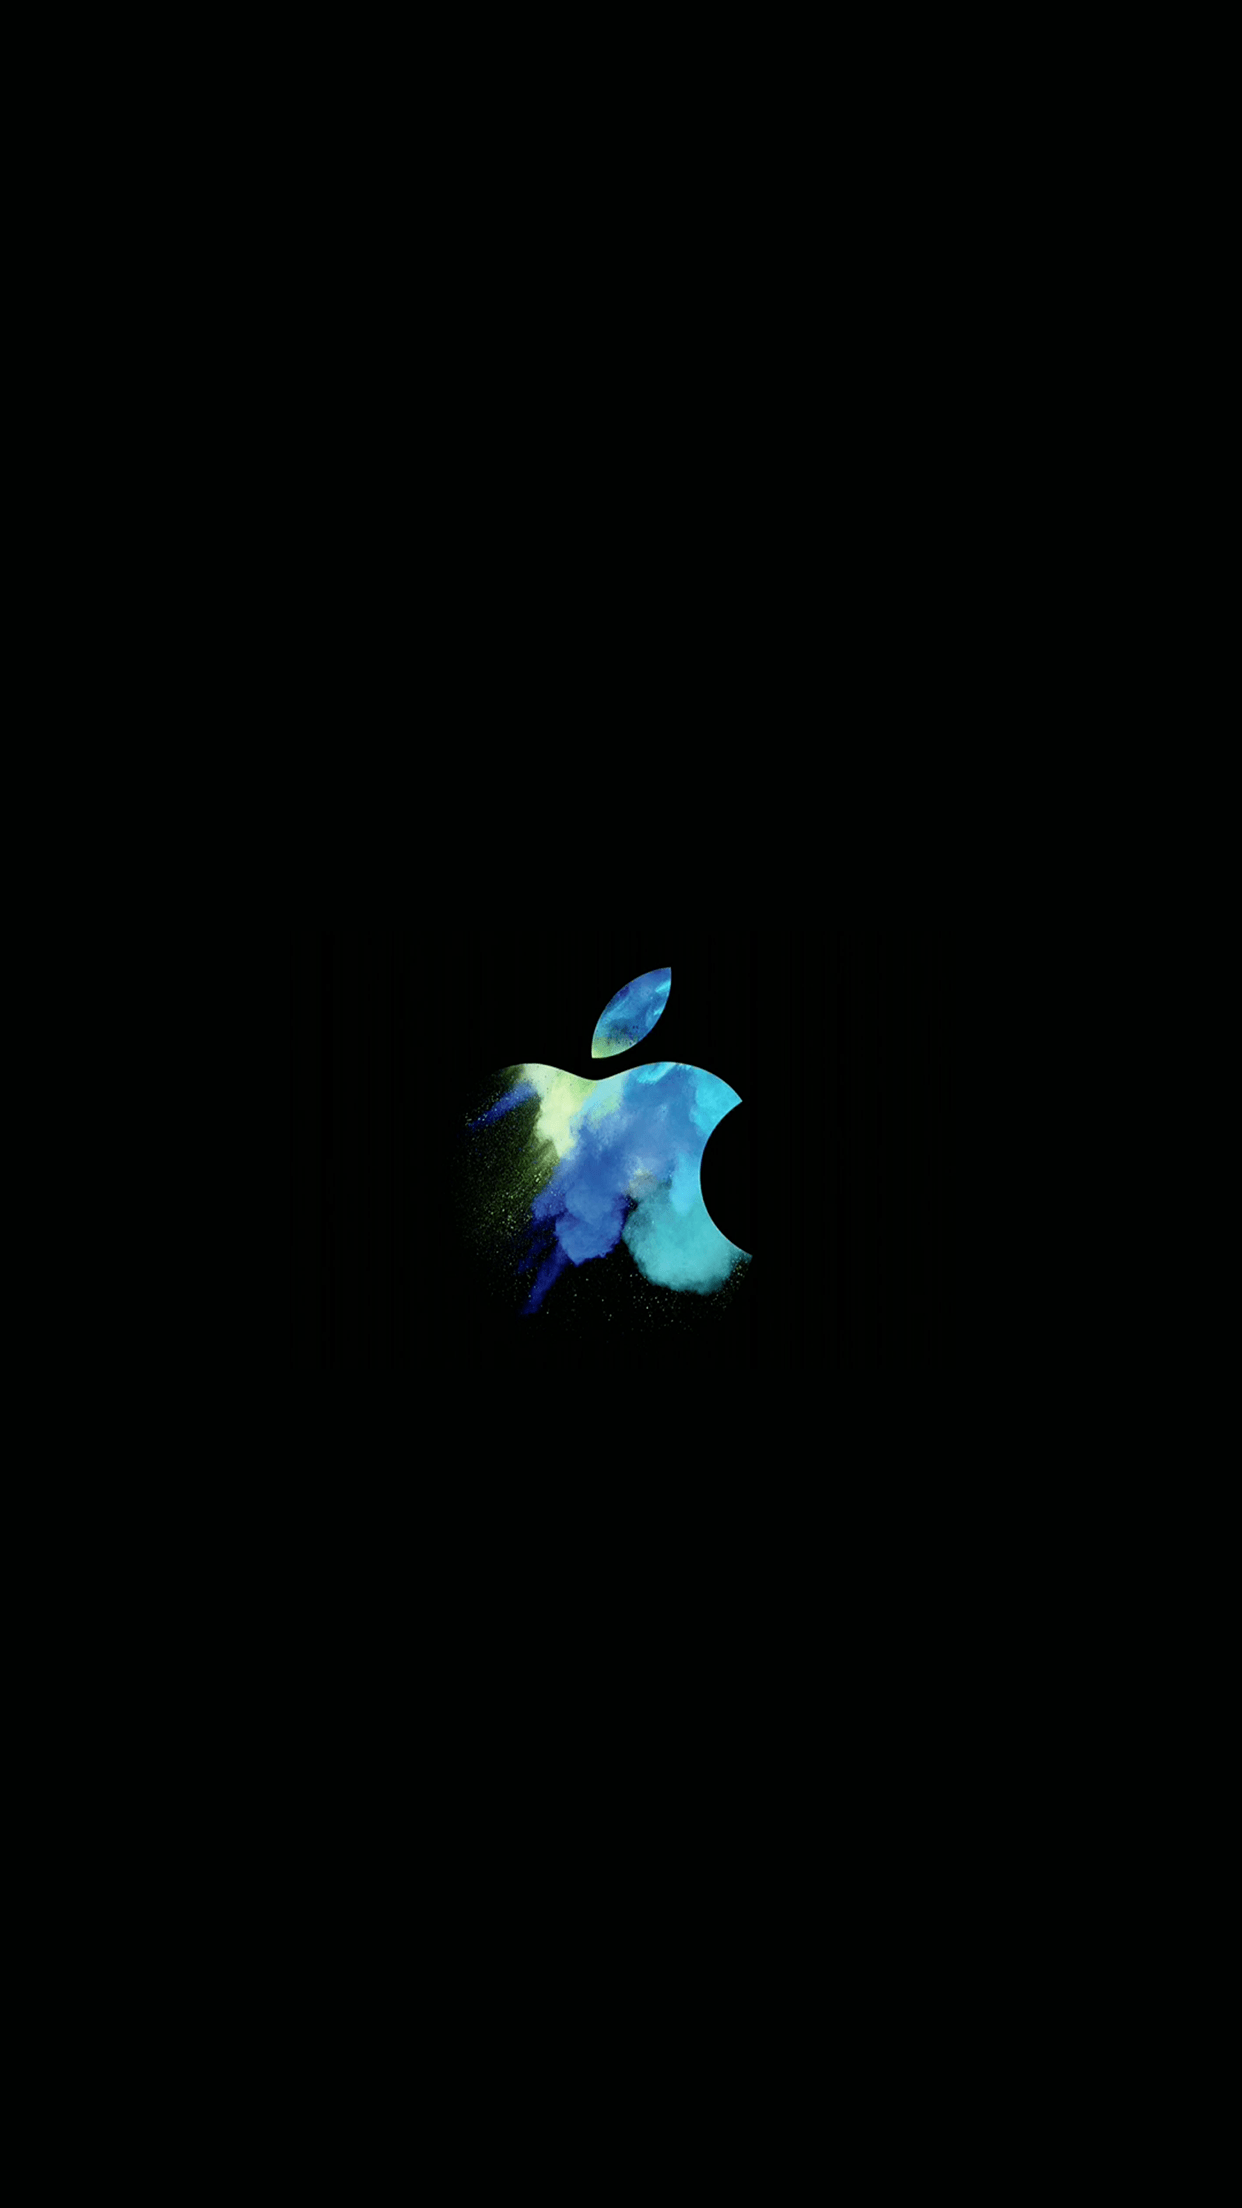 Gucci Mane Iphone Wallpaper Macbook Pro With Touch Bar Event Wallpapers